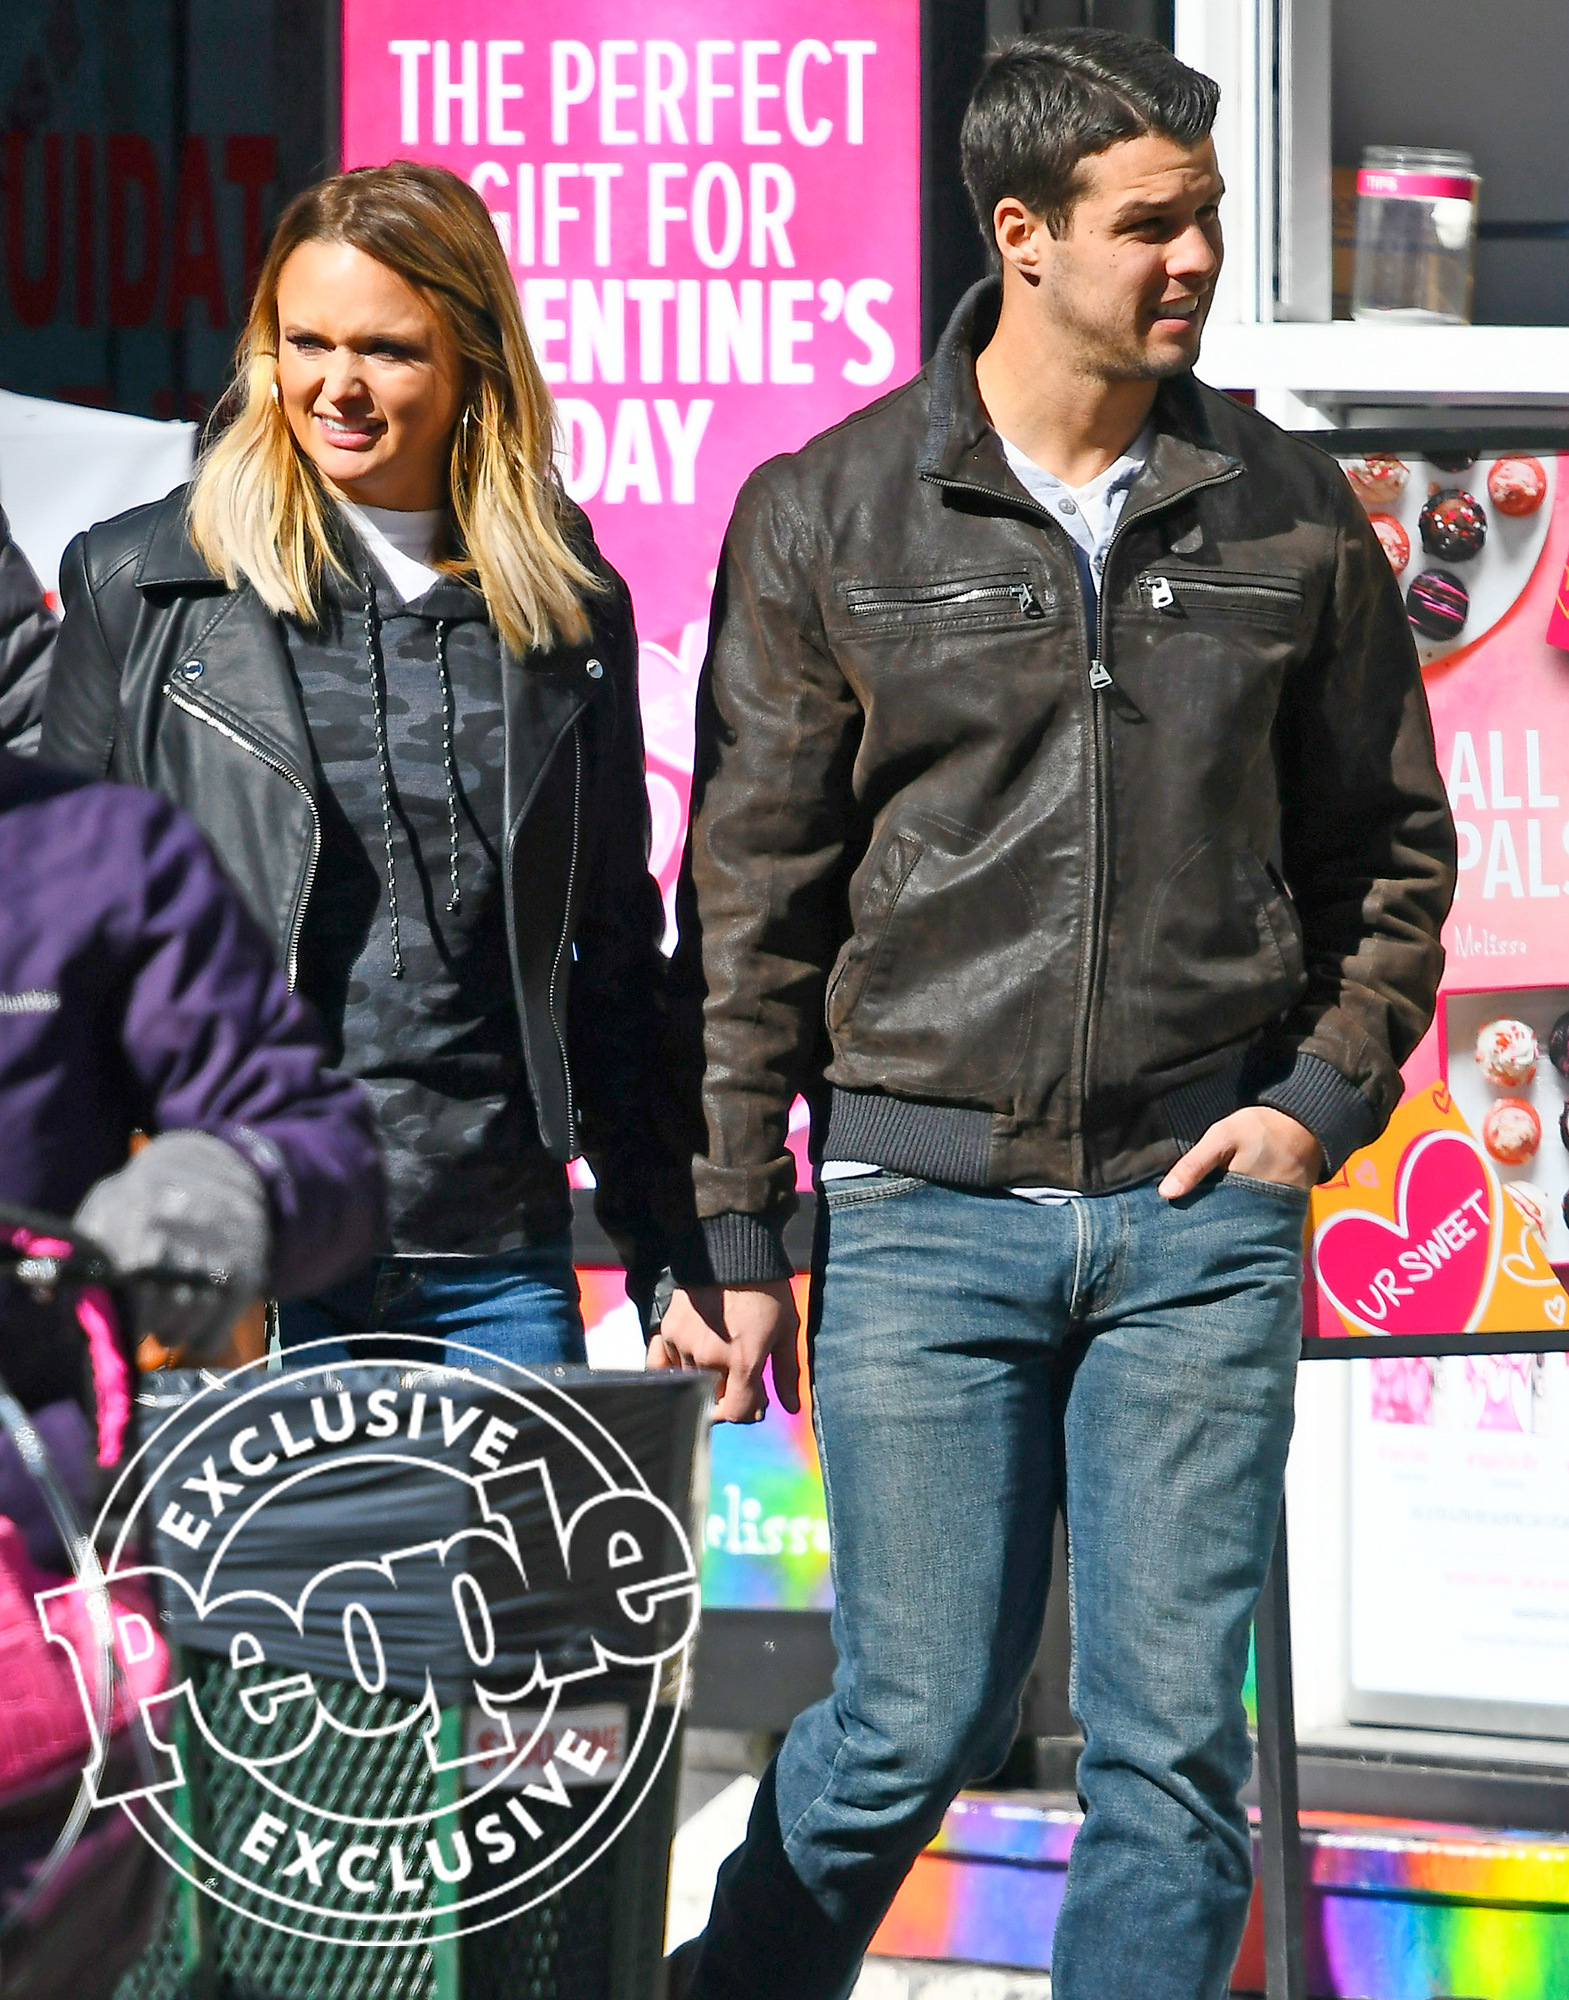 PREMIUM EXCLUSIVE: Miranda Lambert and Male Friend are Spotted with Wedding Bands in New York City